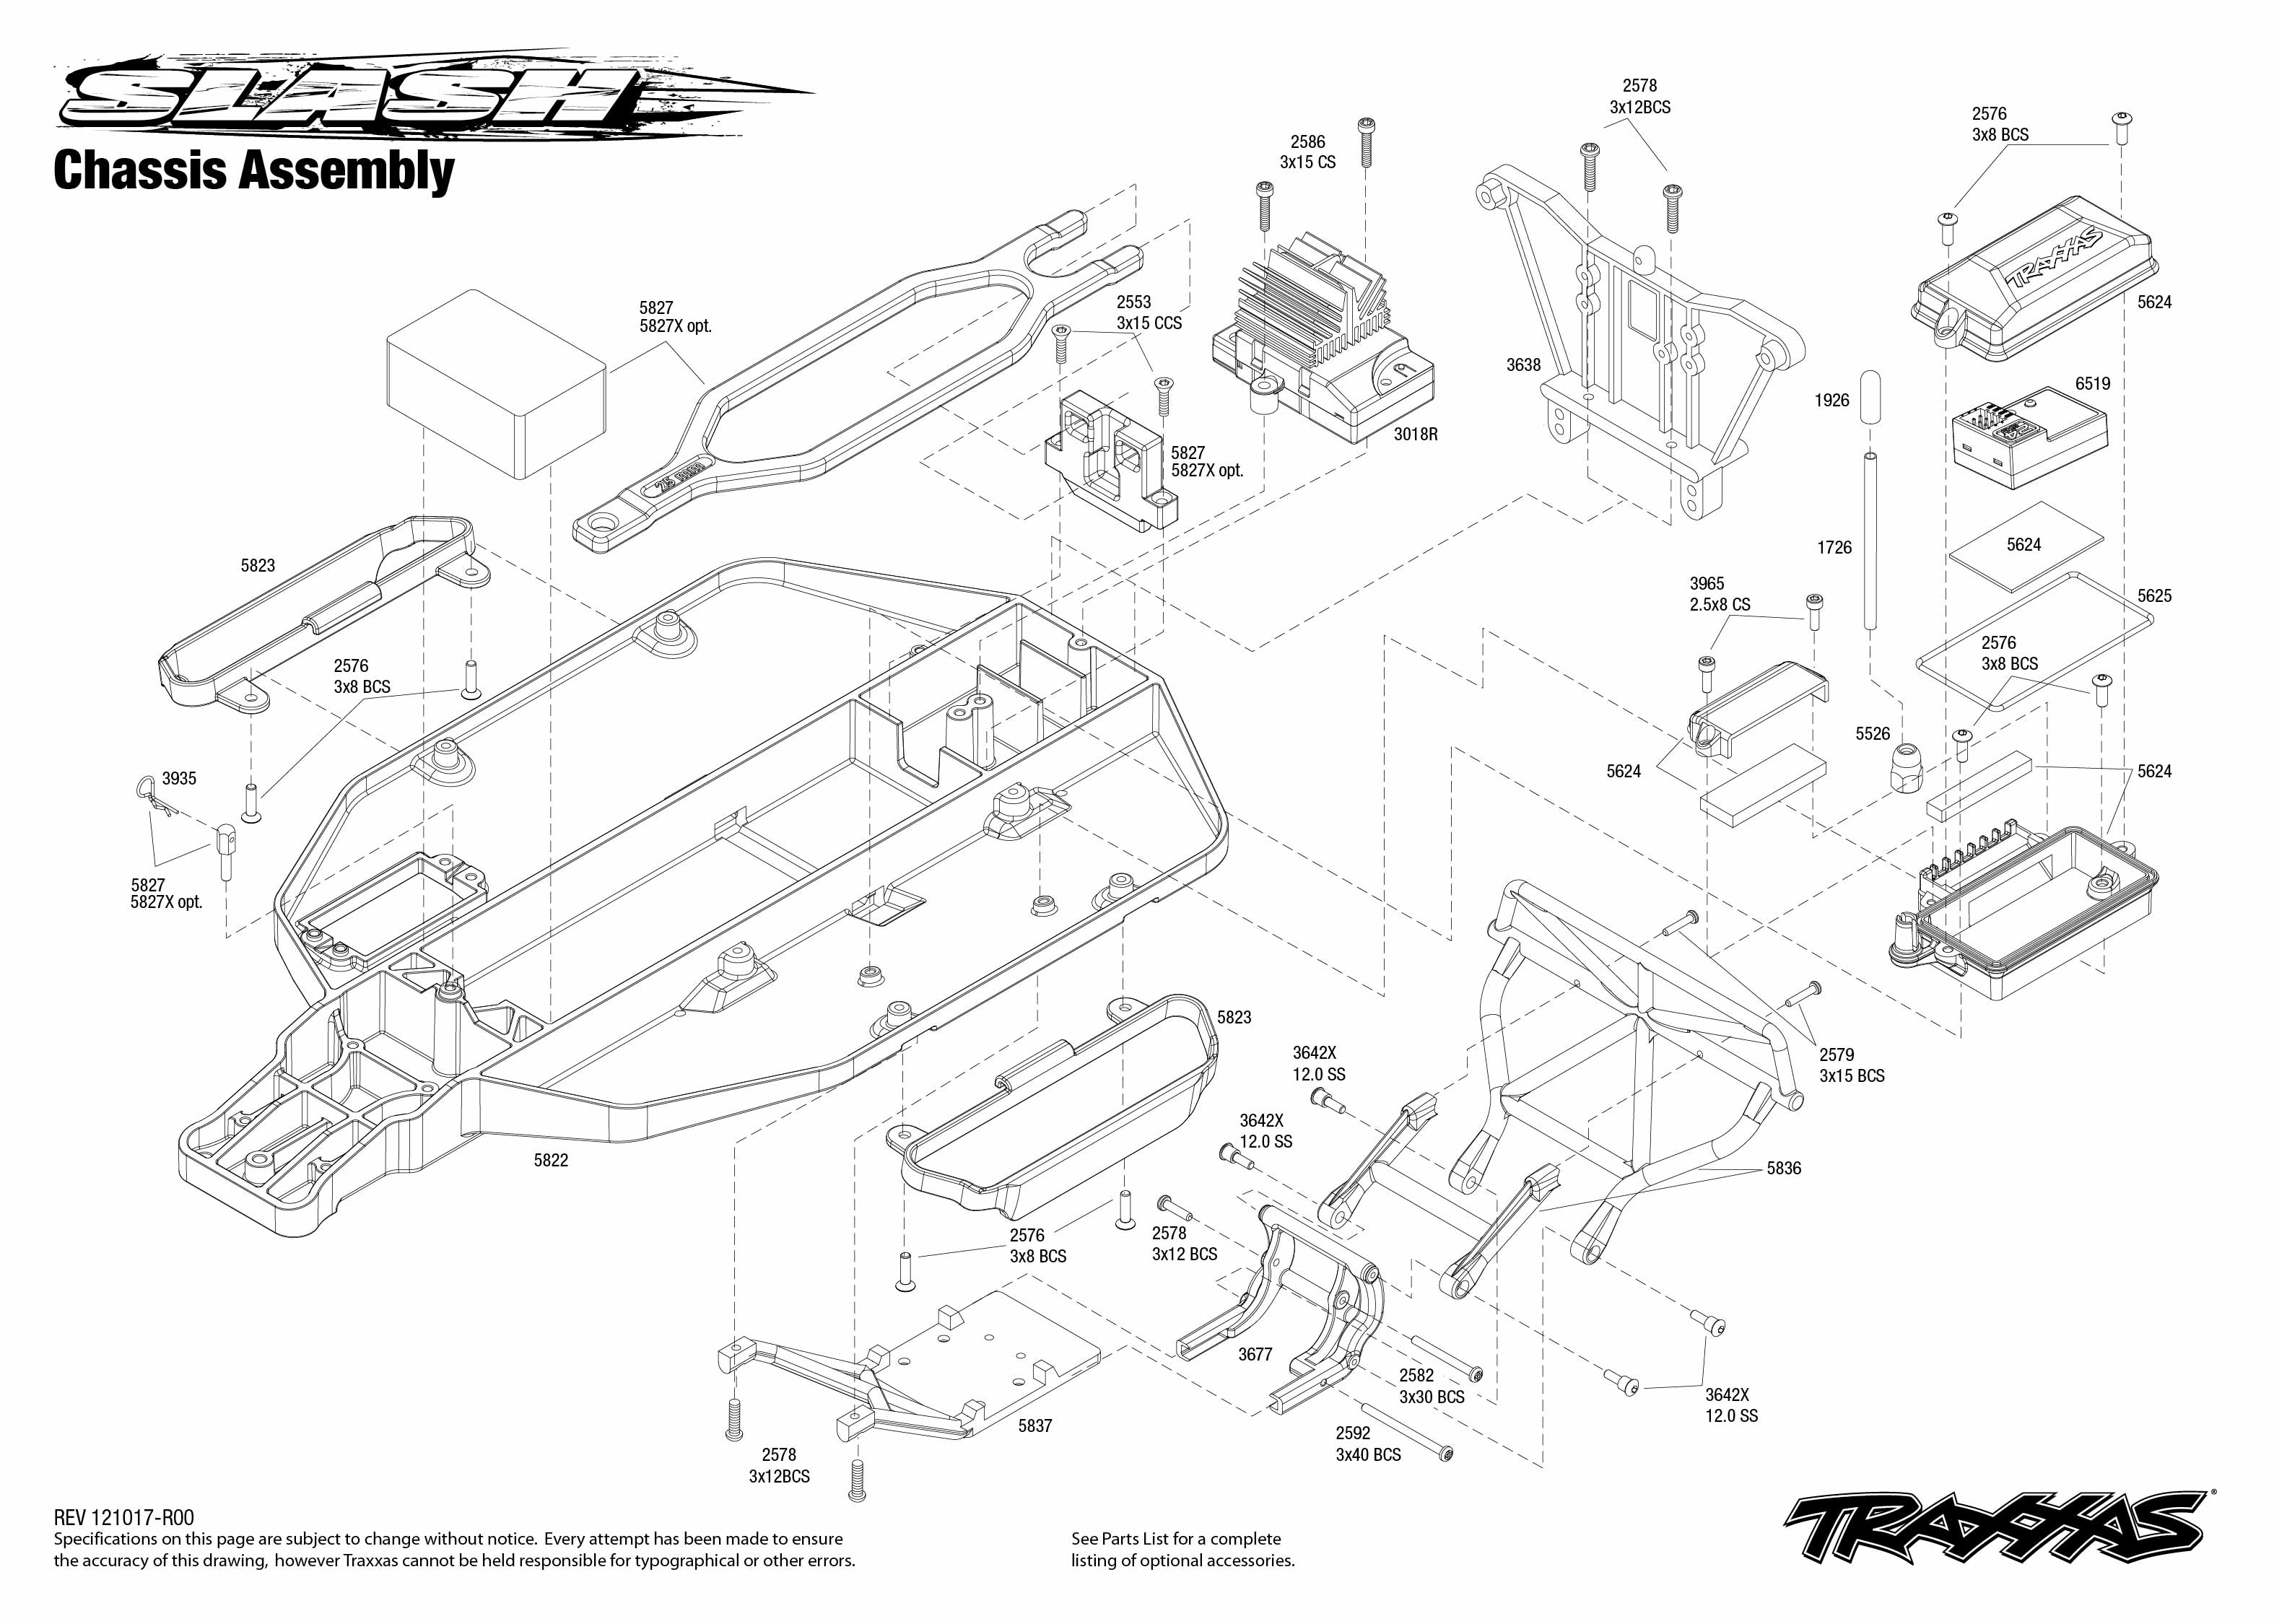 Traxxas Slash Wiring Diagram besides St prod further Traxxas Slash 4x4 Parts Diagram likewise 7105 Transmission Exploded View 116 E Revo Brushed W Titan 550 1T Motor Hobbydel moreover 7005 Rear Exploded View 116 Slash 4X4 Hobbydel. on traxxas 1 16 e revo parts diagram